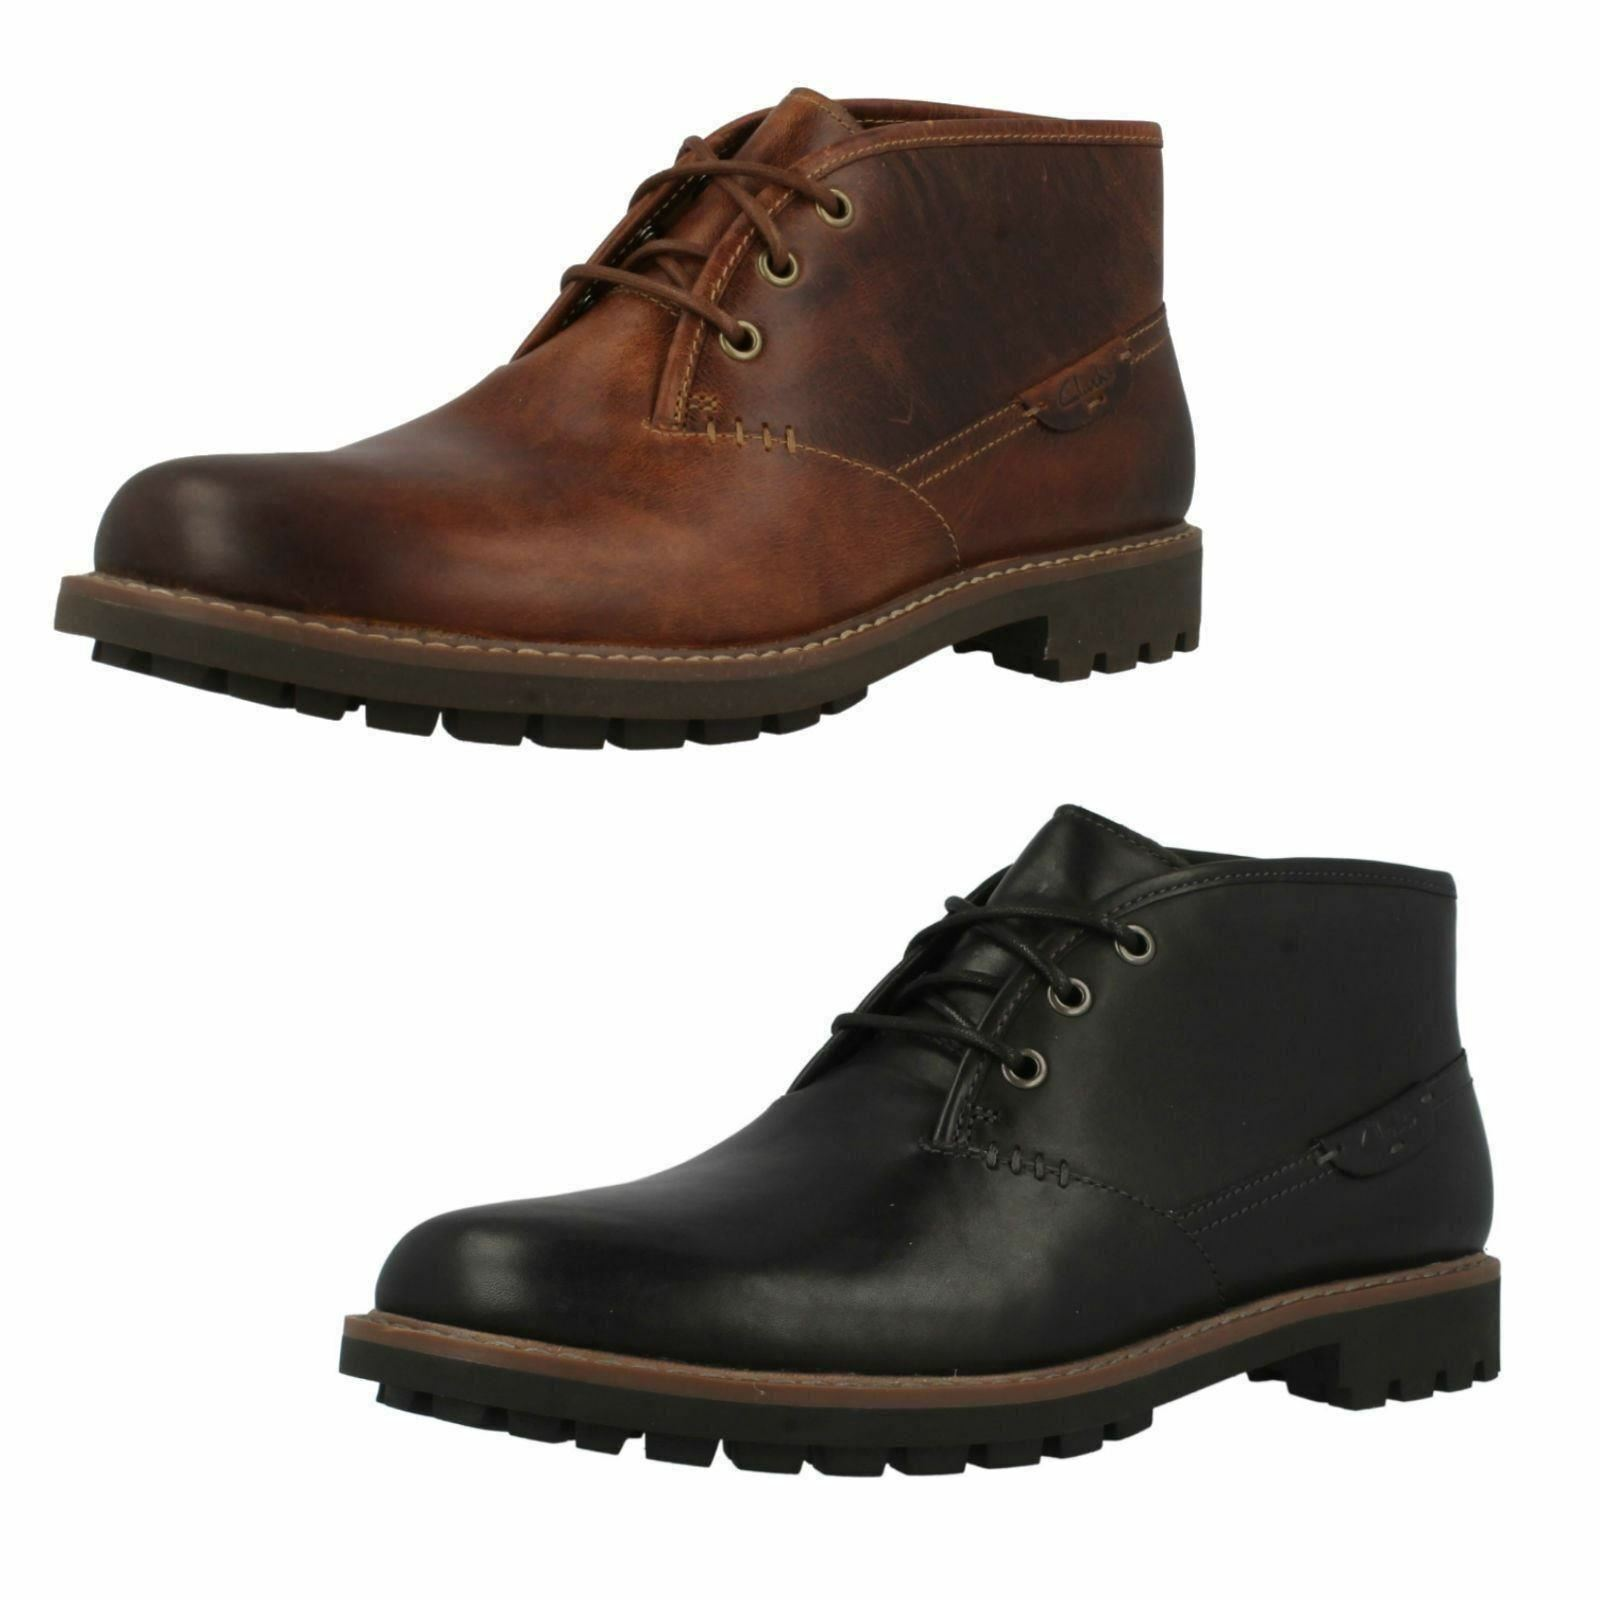 Mens Clarks Montacute Duke Leather Smart Lace Up Ankle Stiefel G Width Fitting